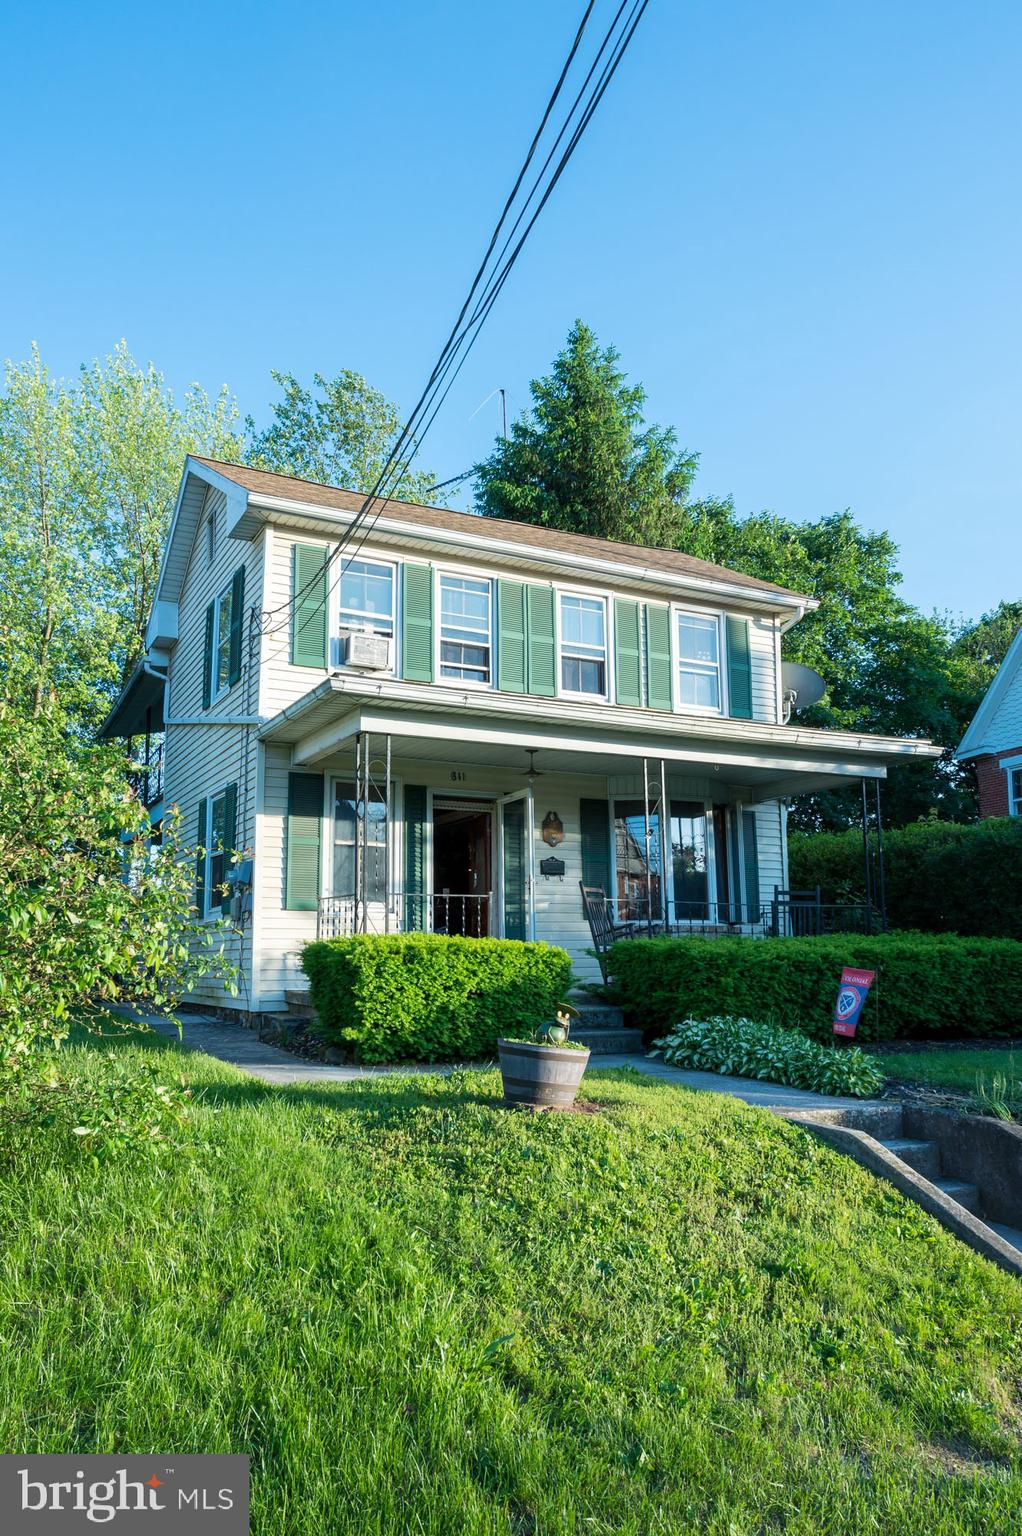 311 LINCOLN WAY W, NEW OXFORD, PA 17350